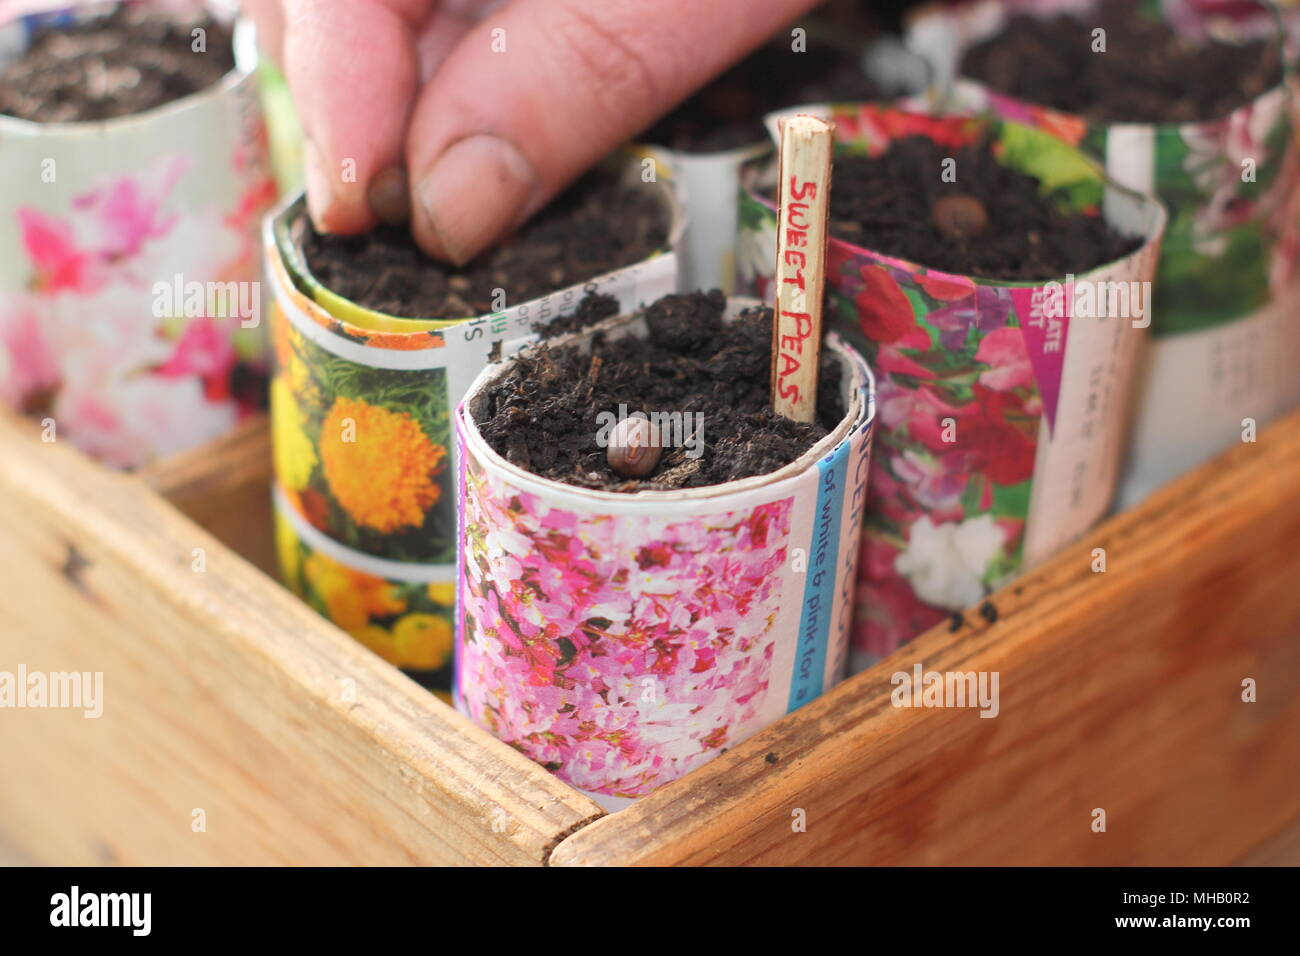 Lathyrus odoratus. Sowing sweet pea seeds in homemade paper pots labelled with a sliced twig as an alternative to using plastic in gardening, UK - Stock Image